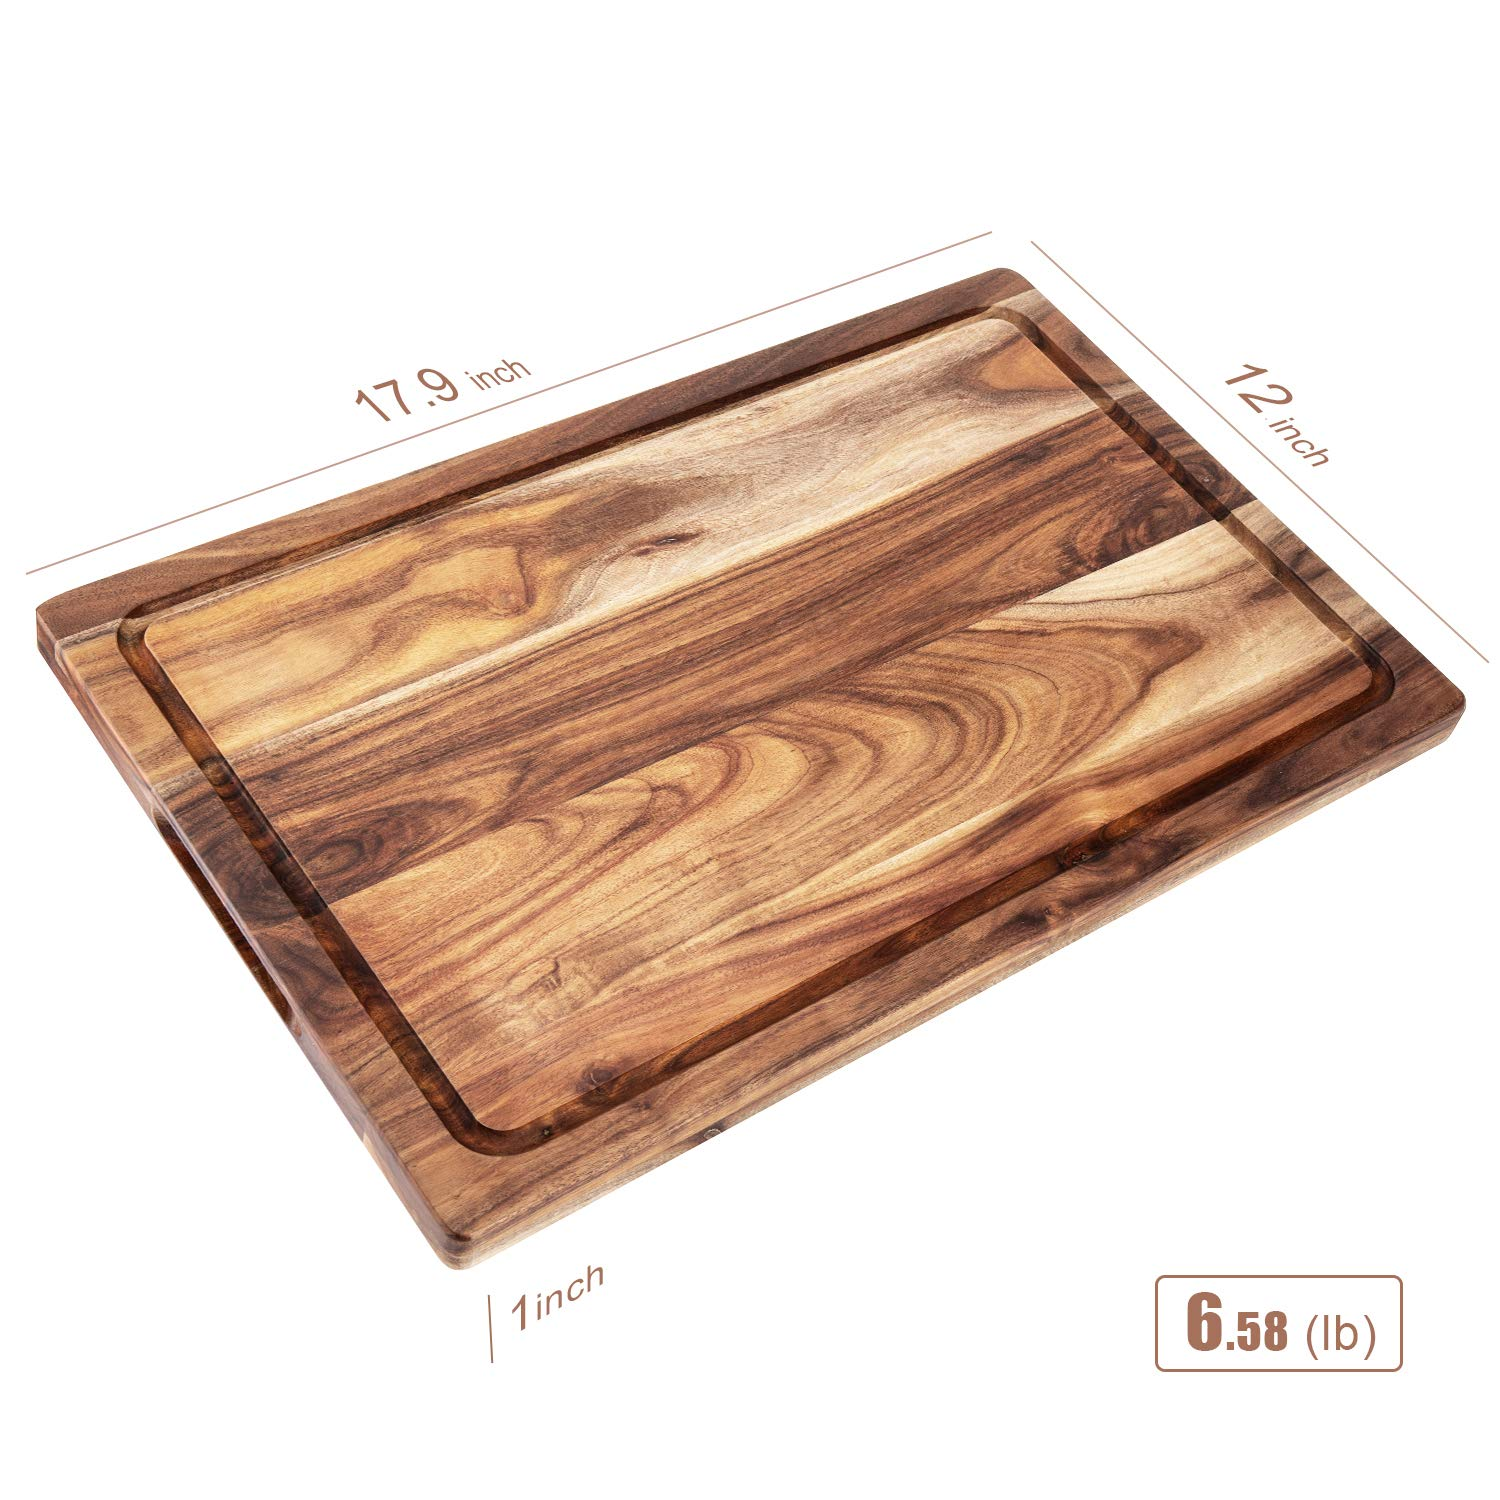 AIJAI Natural Wood Cutting Board(M-XL), Large Multipurpose Thick Acacia Wood Chopping Board for Kitchen Serving Tray for Vegetables, Fruit, Meat, Fish & Cheese| Reversible Butcher Block by AIJAI (Image #2)